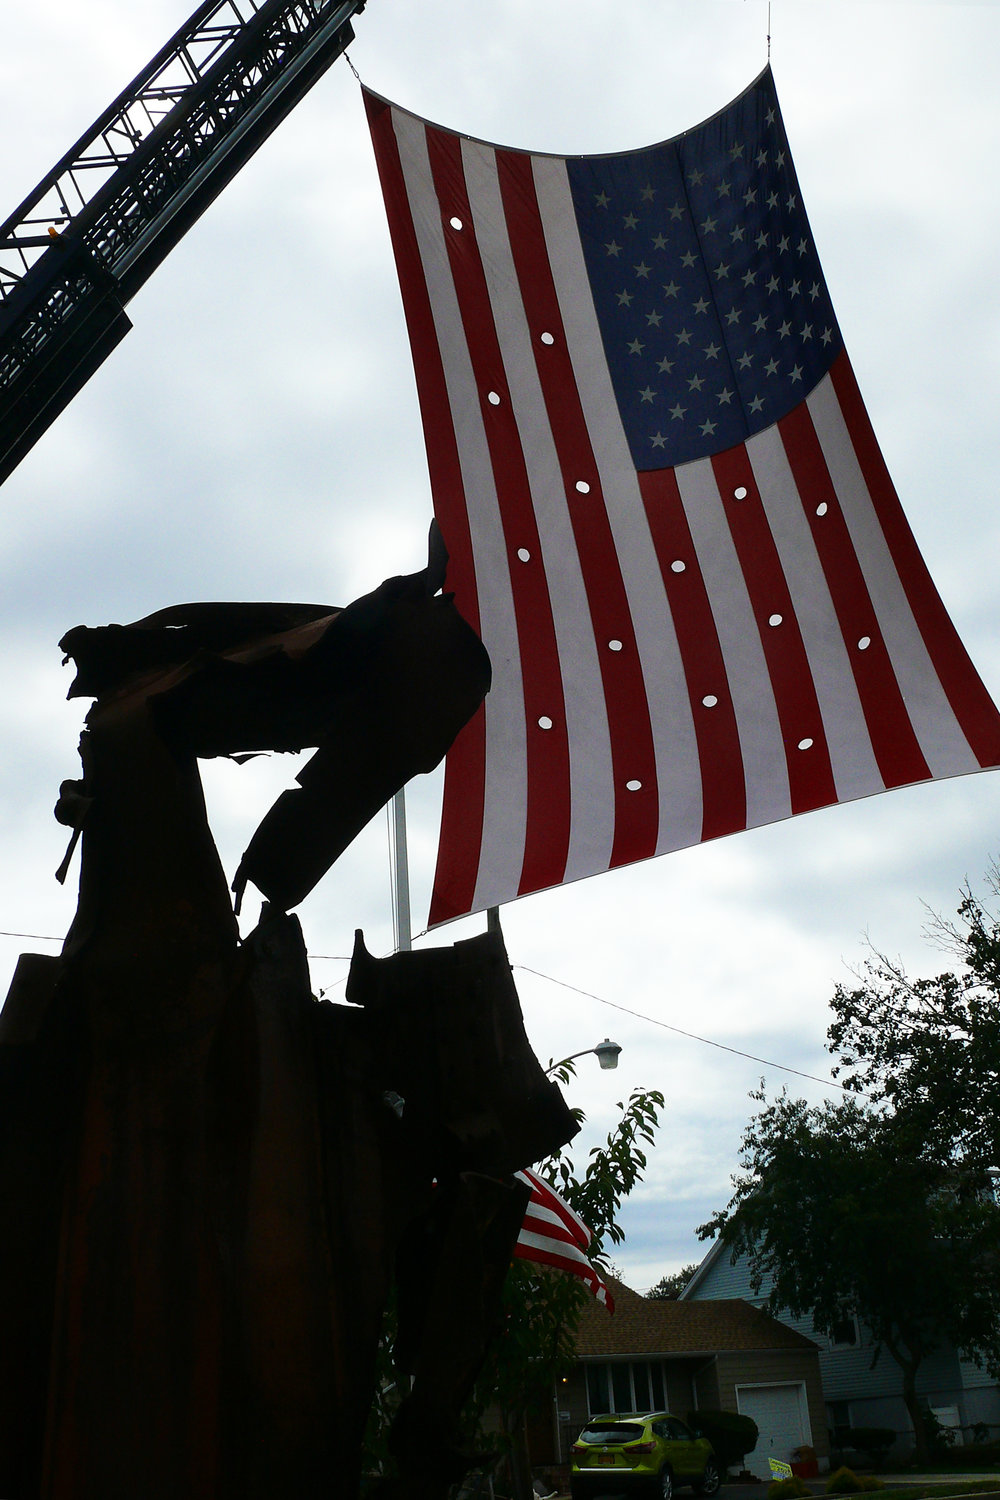 The Island Park Fire Department displayed an American flag in remembrance of those lost.